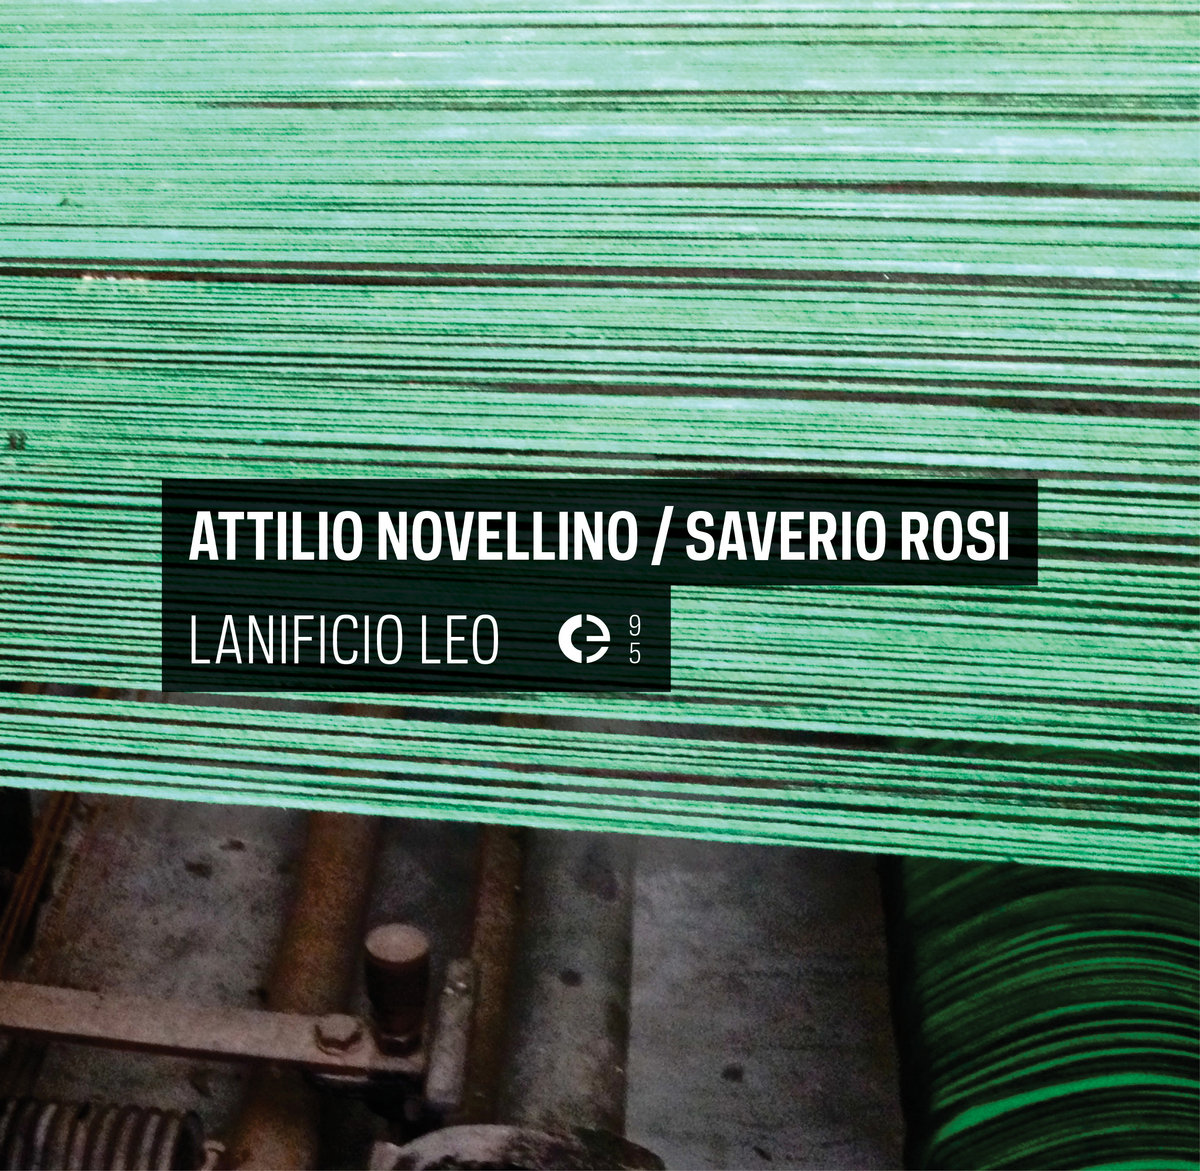 Cover Attilio Novellino, Saverio Rosi - Part 1: Carding 1: Rove Making / Carding 2: Web Making